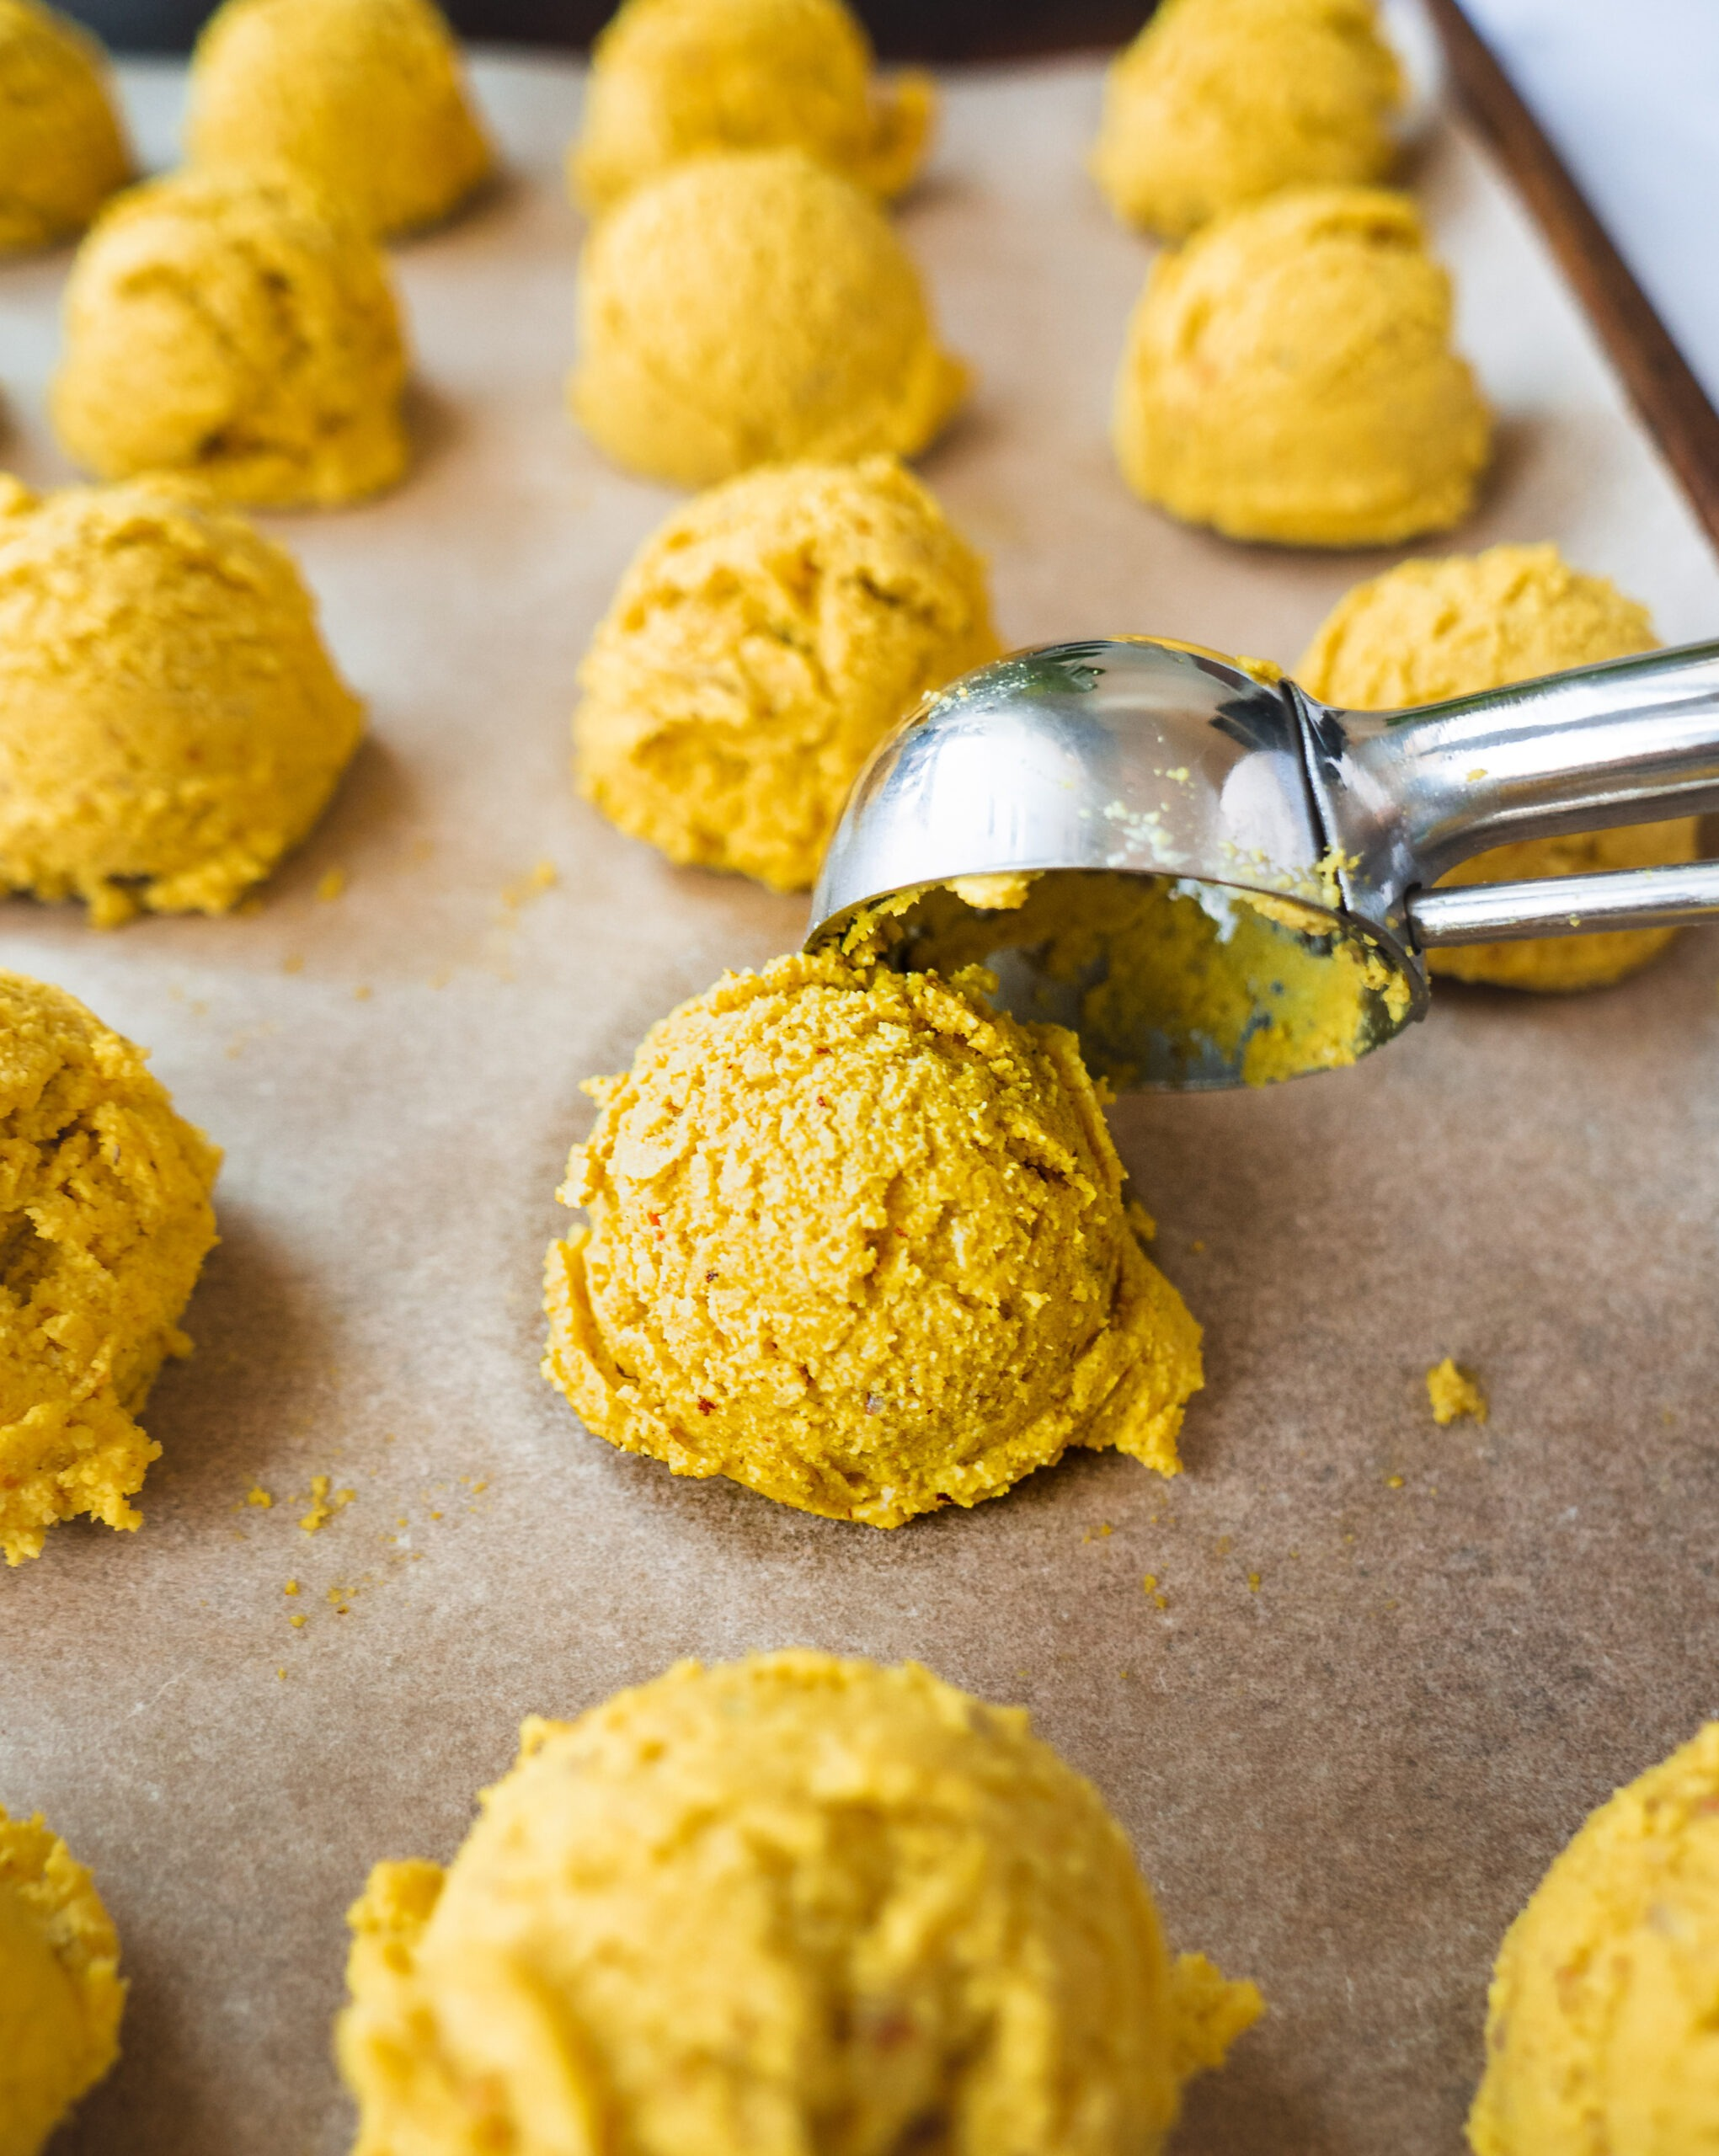 a cookie scoop is used to make yellow cookie dough-like balls